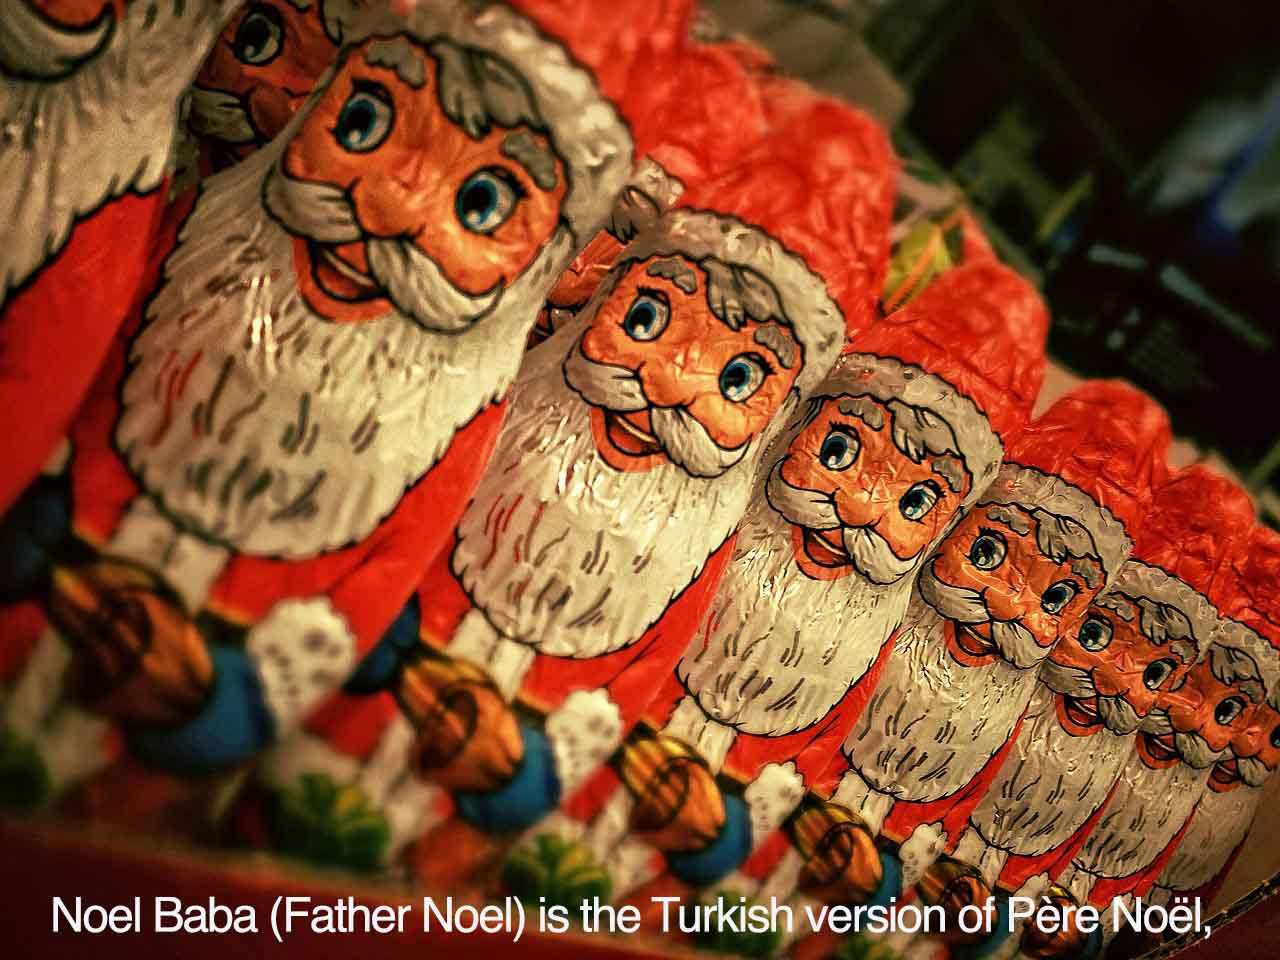 Noel Baba (Father Noel) is the Turkish version of Père Noël